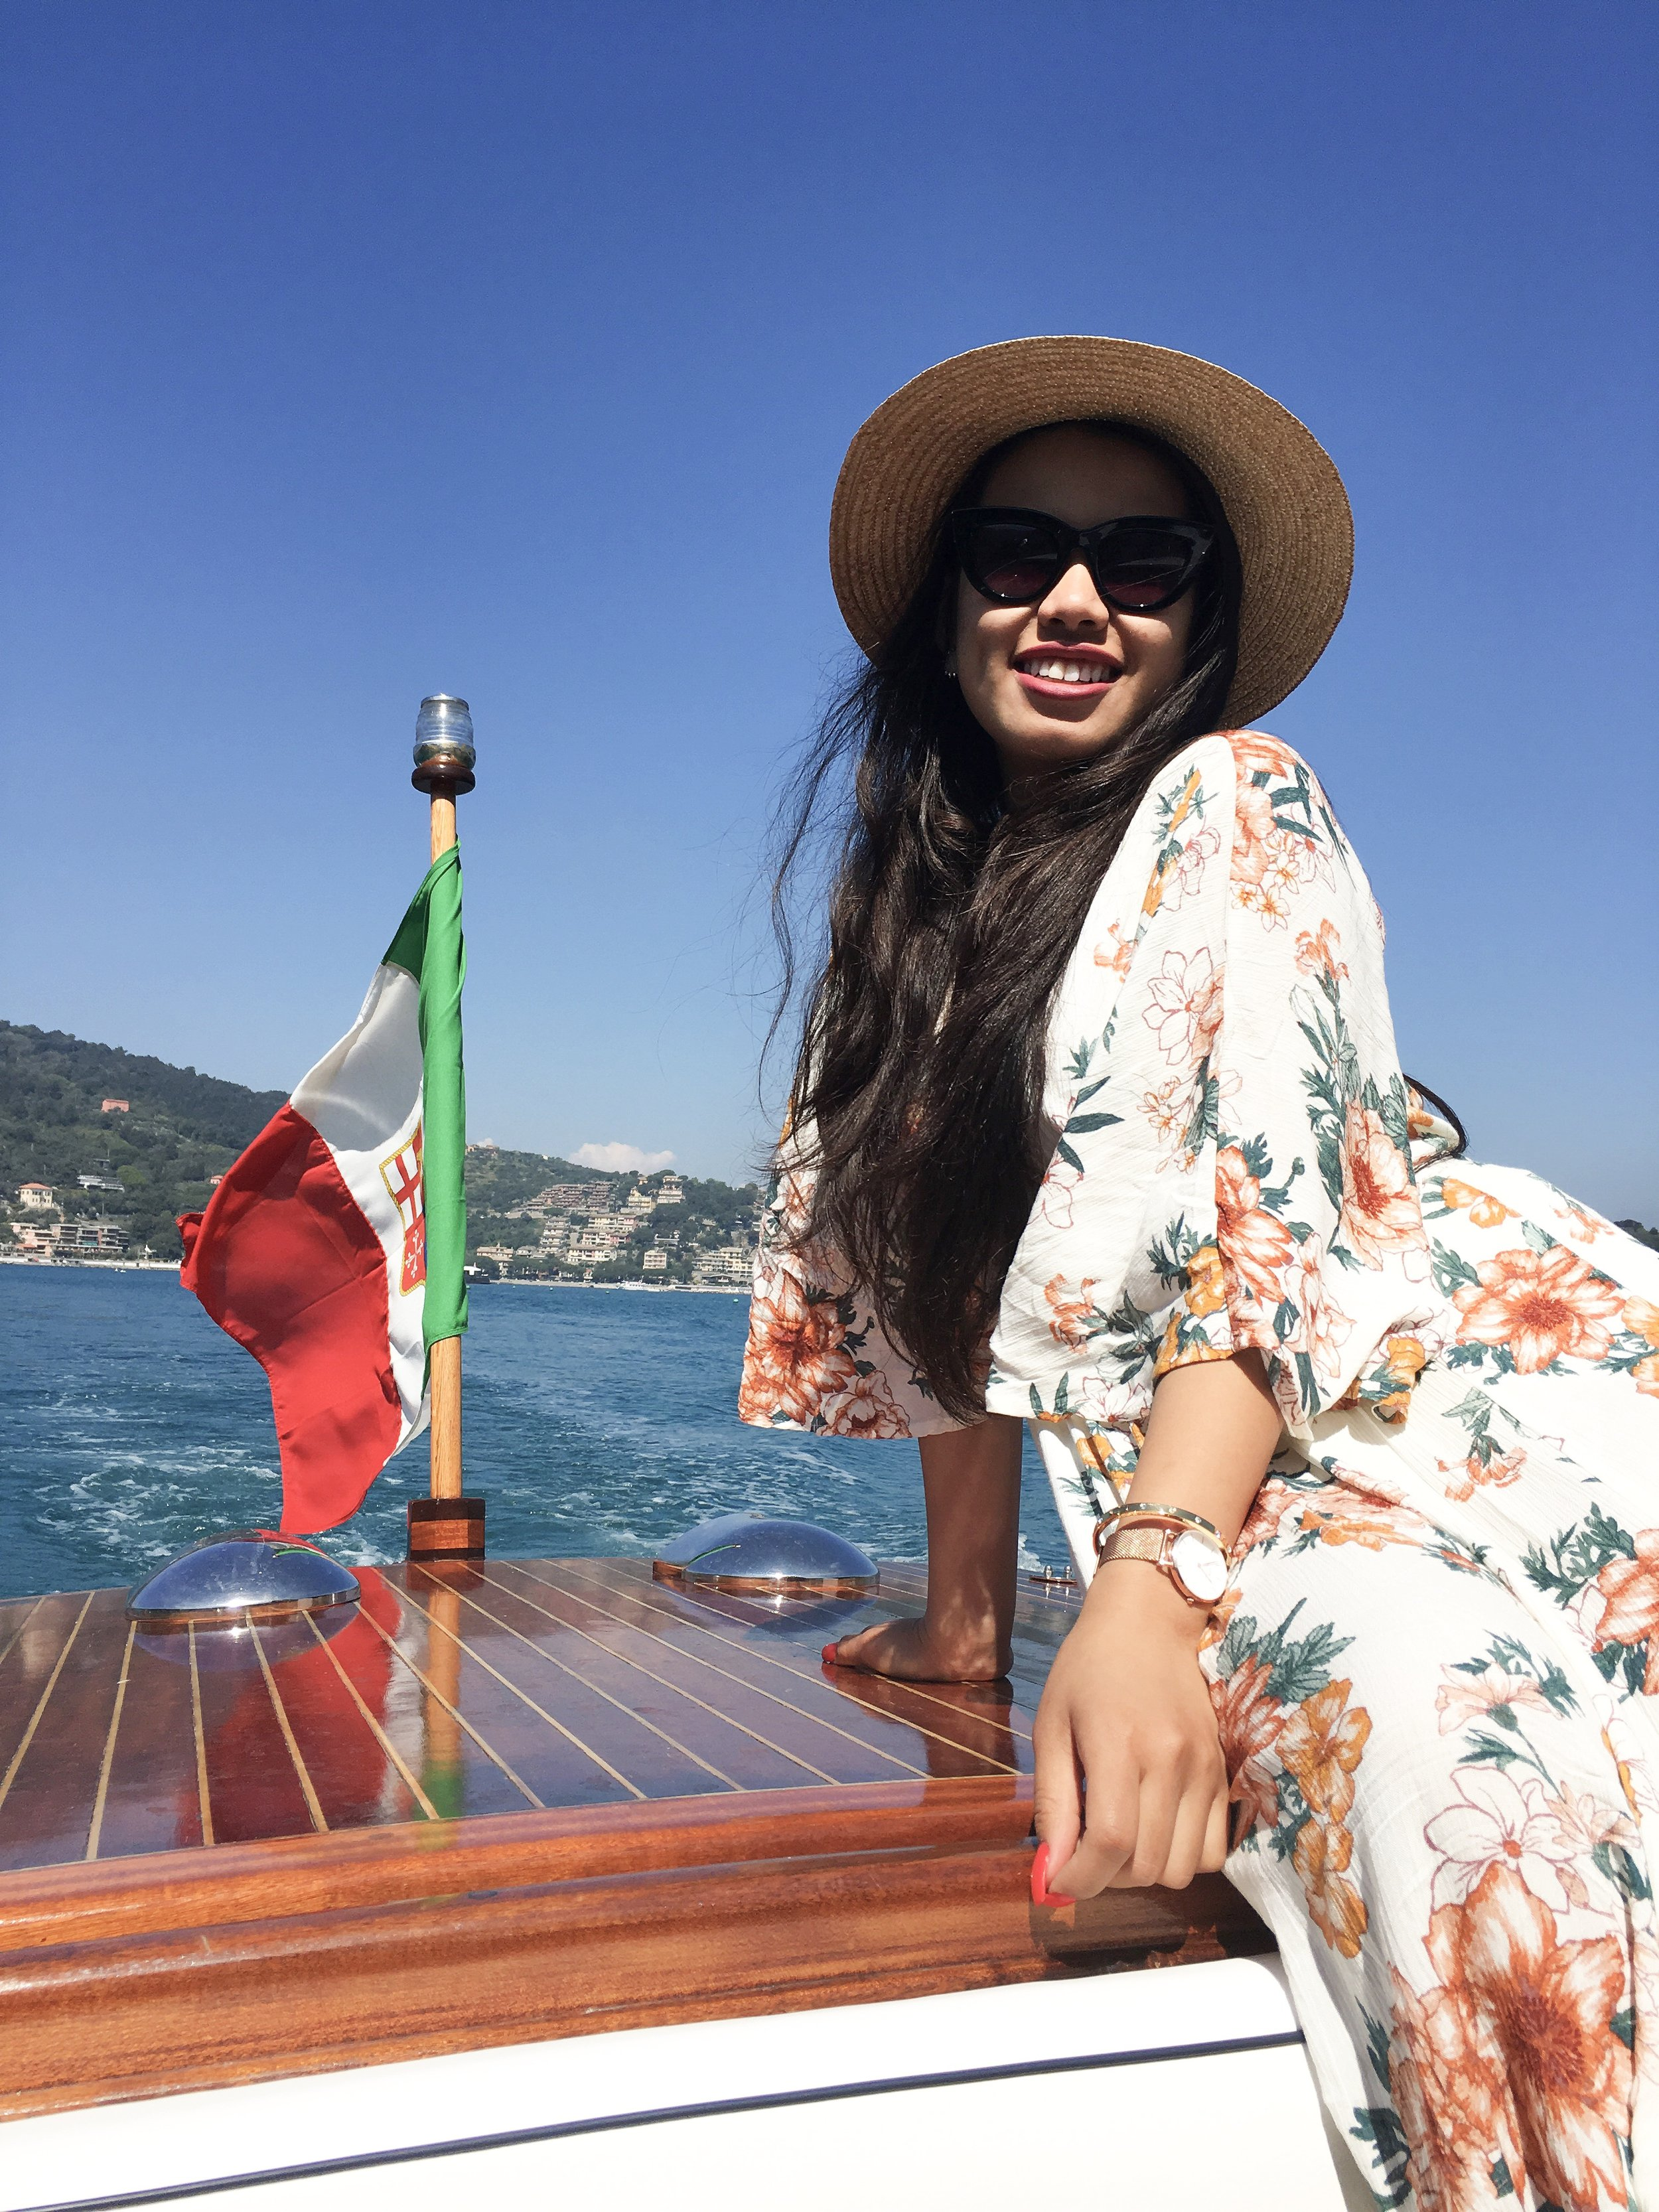 Found out about   how   to get whisked away to lunch on a boat by an Italian man through a blog post I came across while researching for my trip!